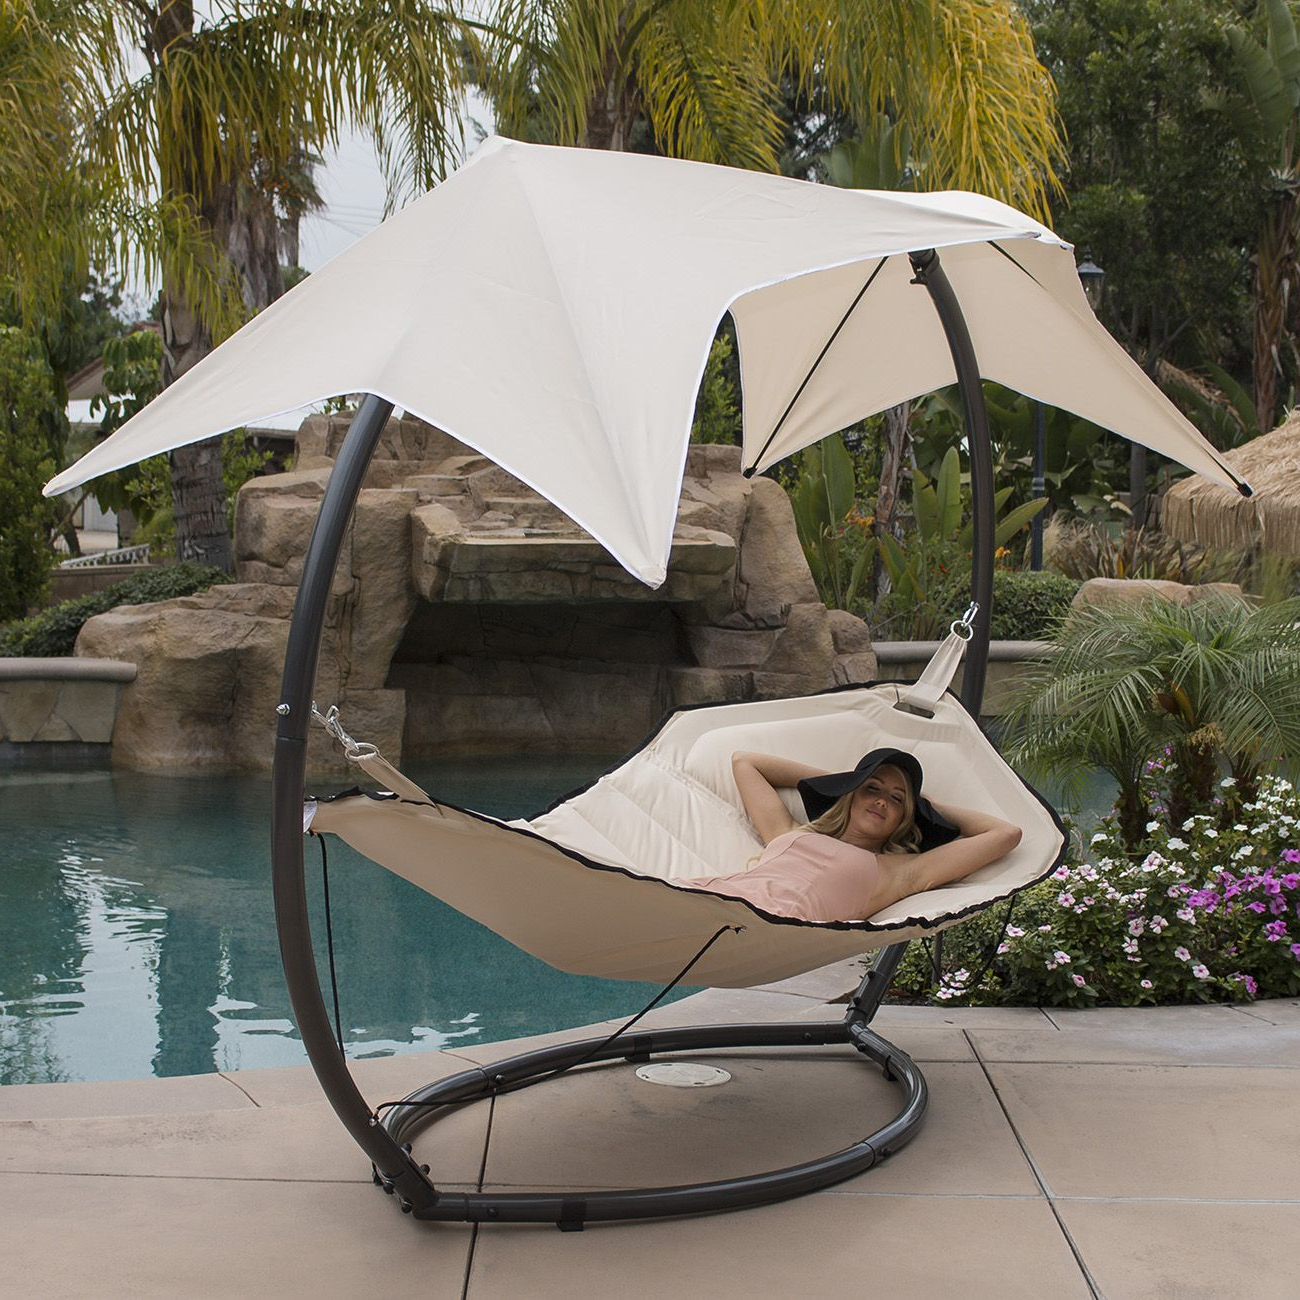 Well Known Garden Leisure Outdoor Hammock Patio Canopy Rocking Chairs Regarding Belleze Belleze Patio Hammock W/ Sunroof Canopy Outdoor (View 7 of 25)